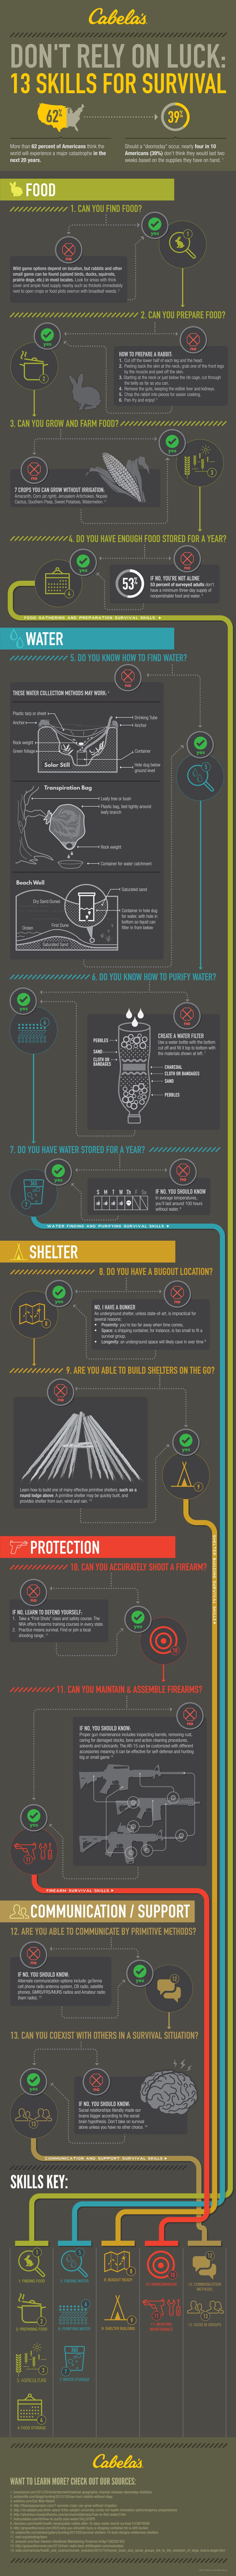 How to Escape the End of the World: 13 Skills for Survival! - Infographic